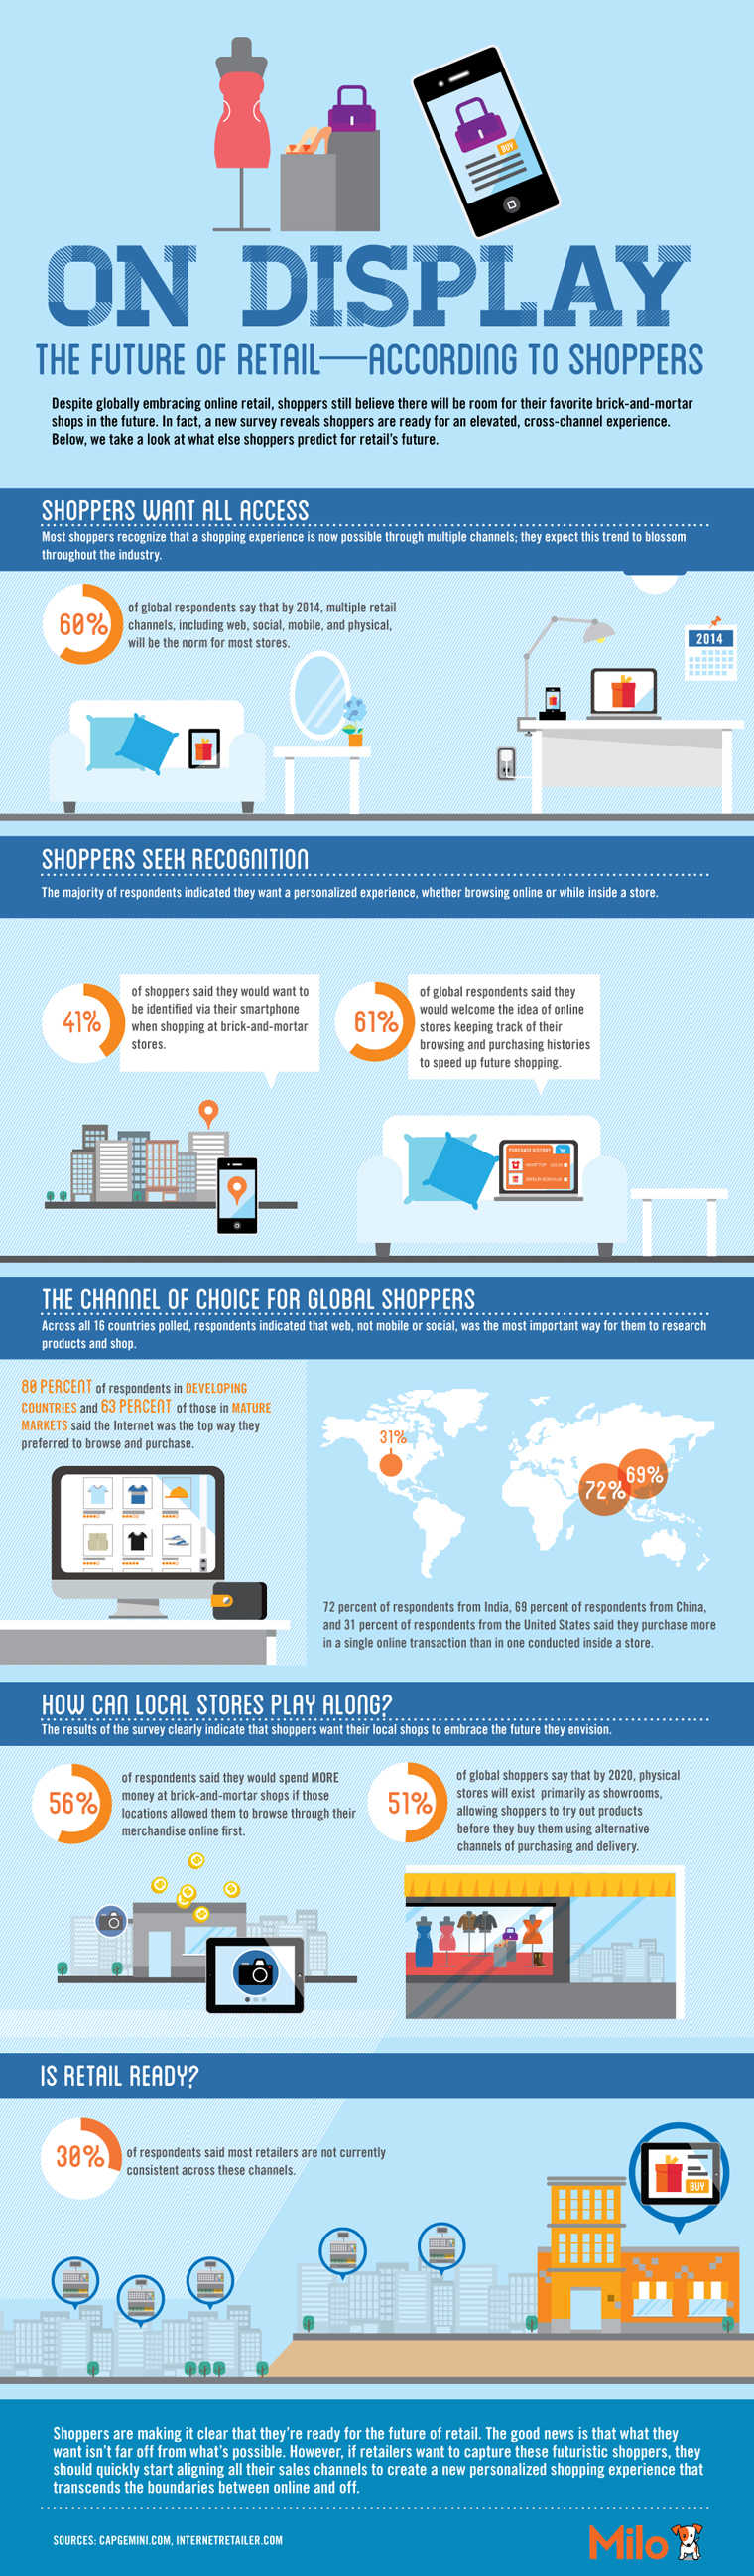 The Future of Retail infographic